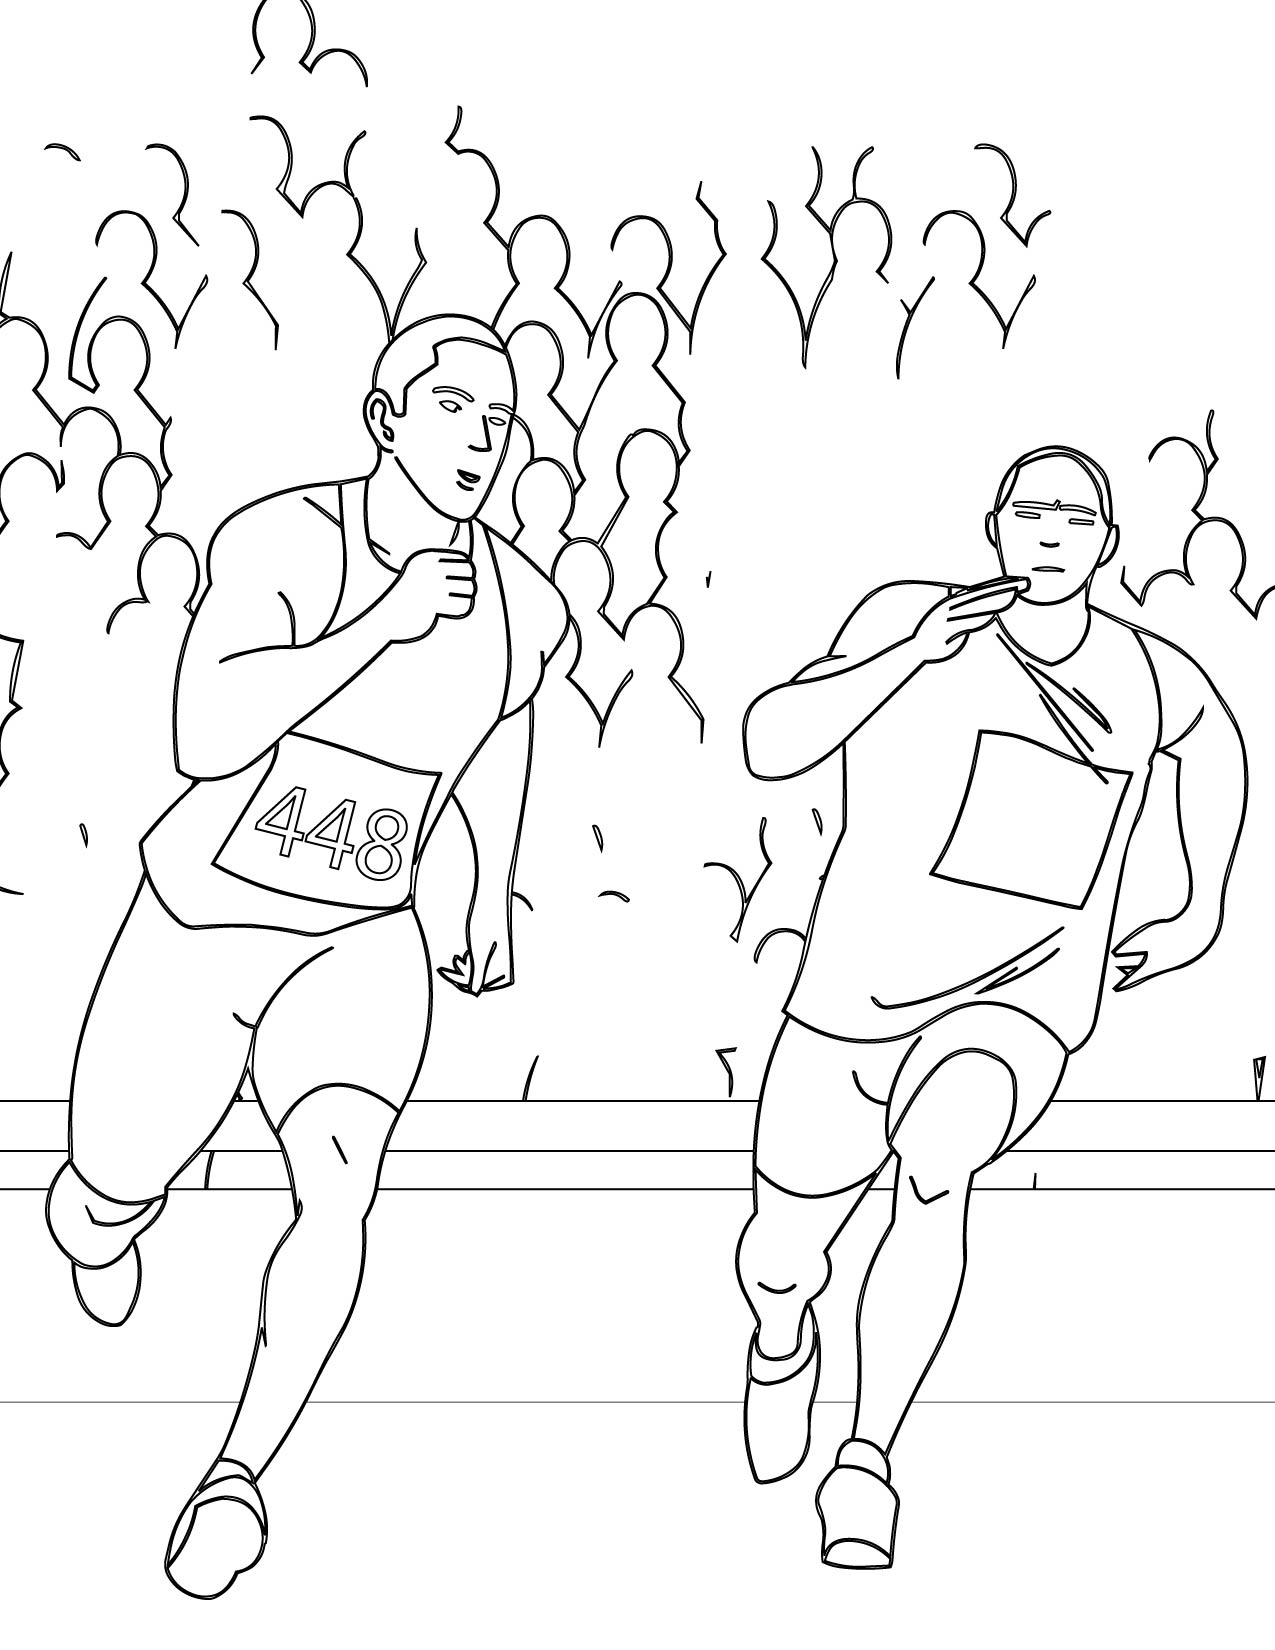 running a race coloring pages - photo#11